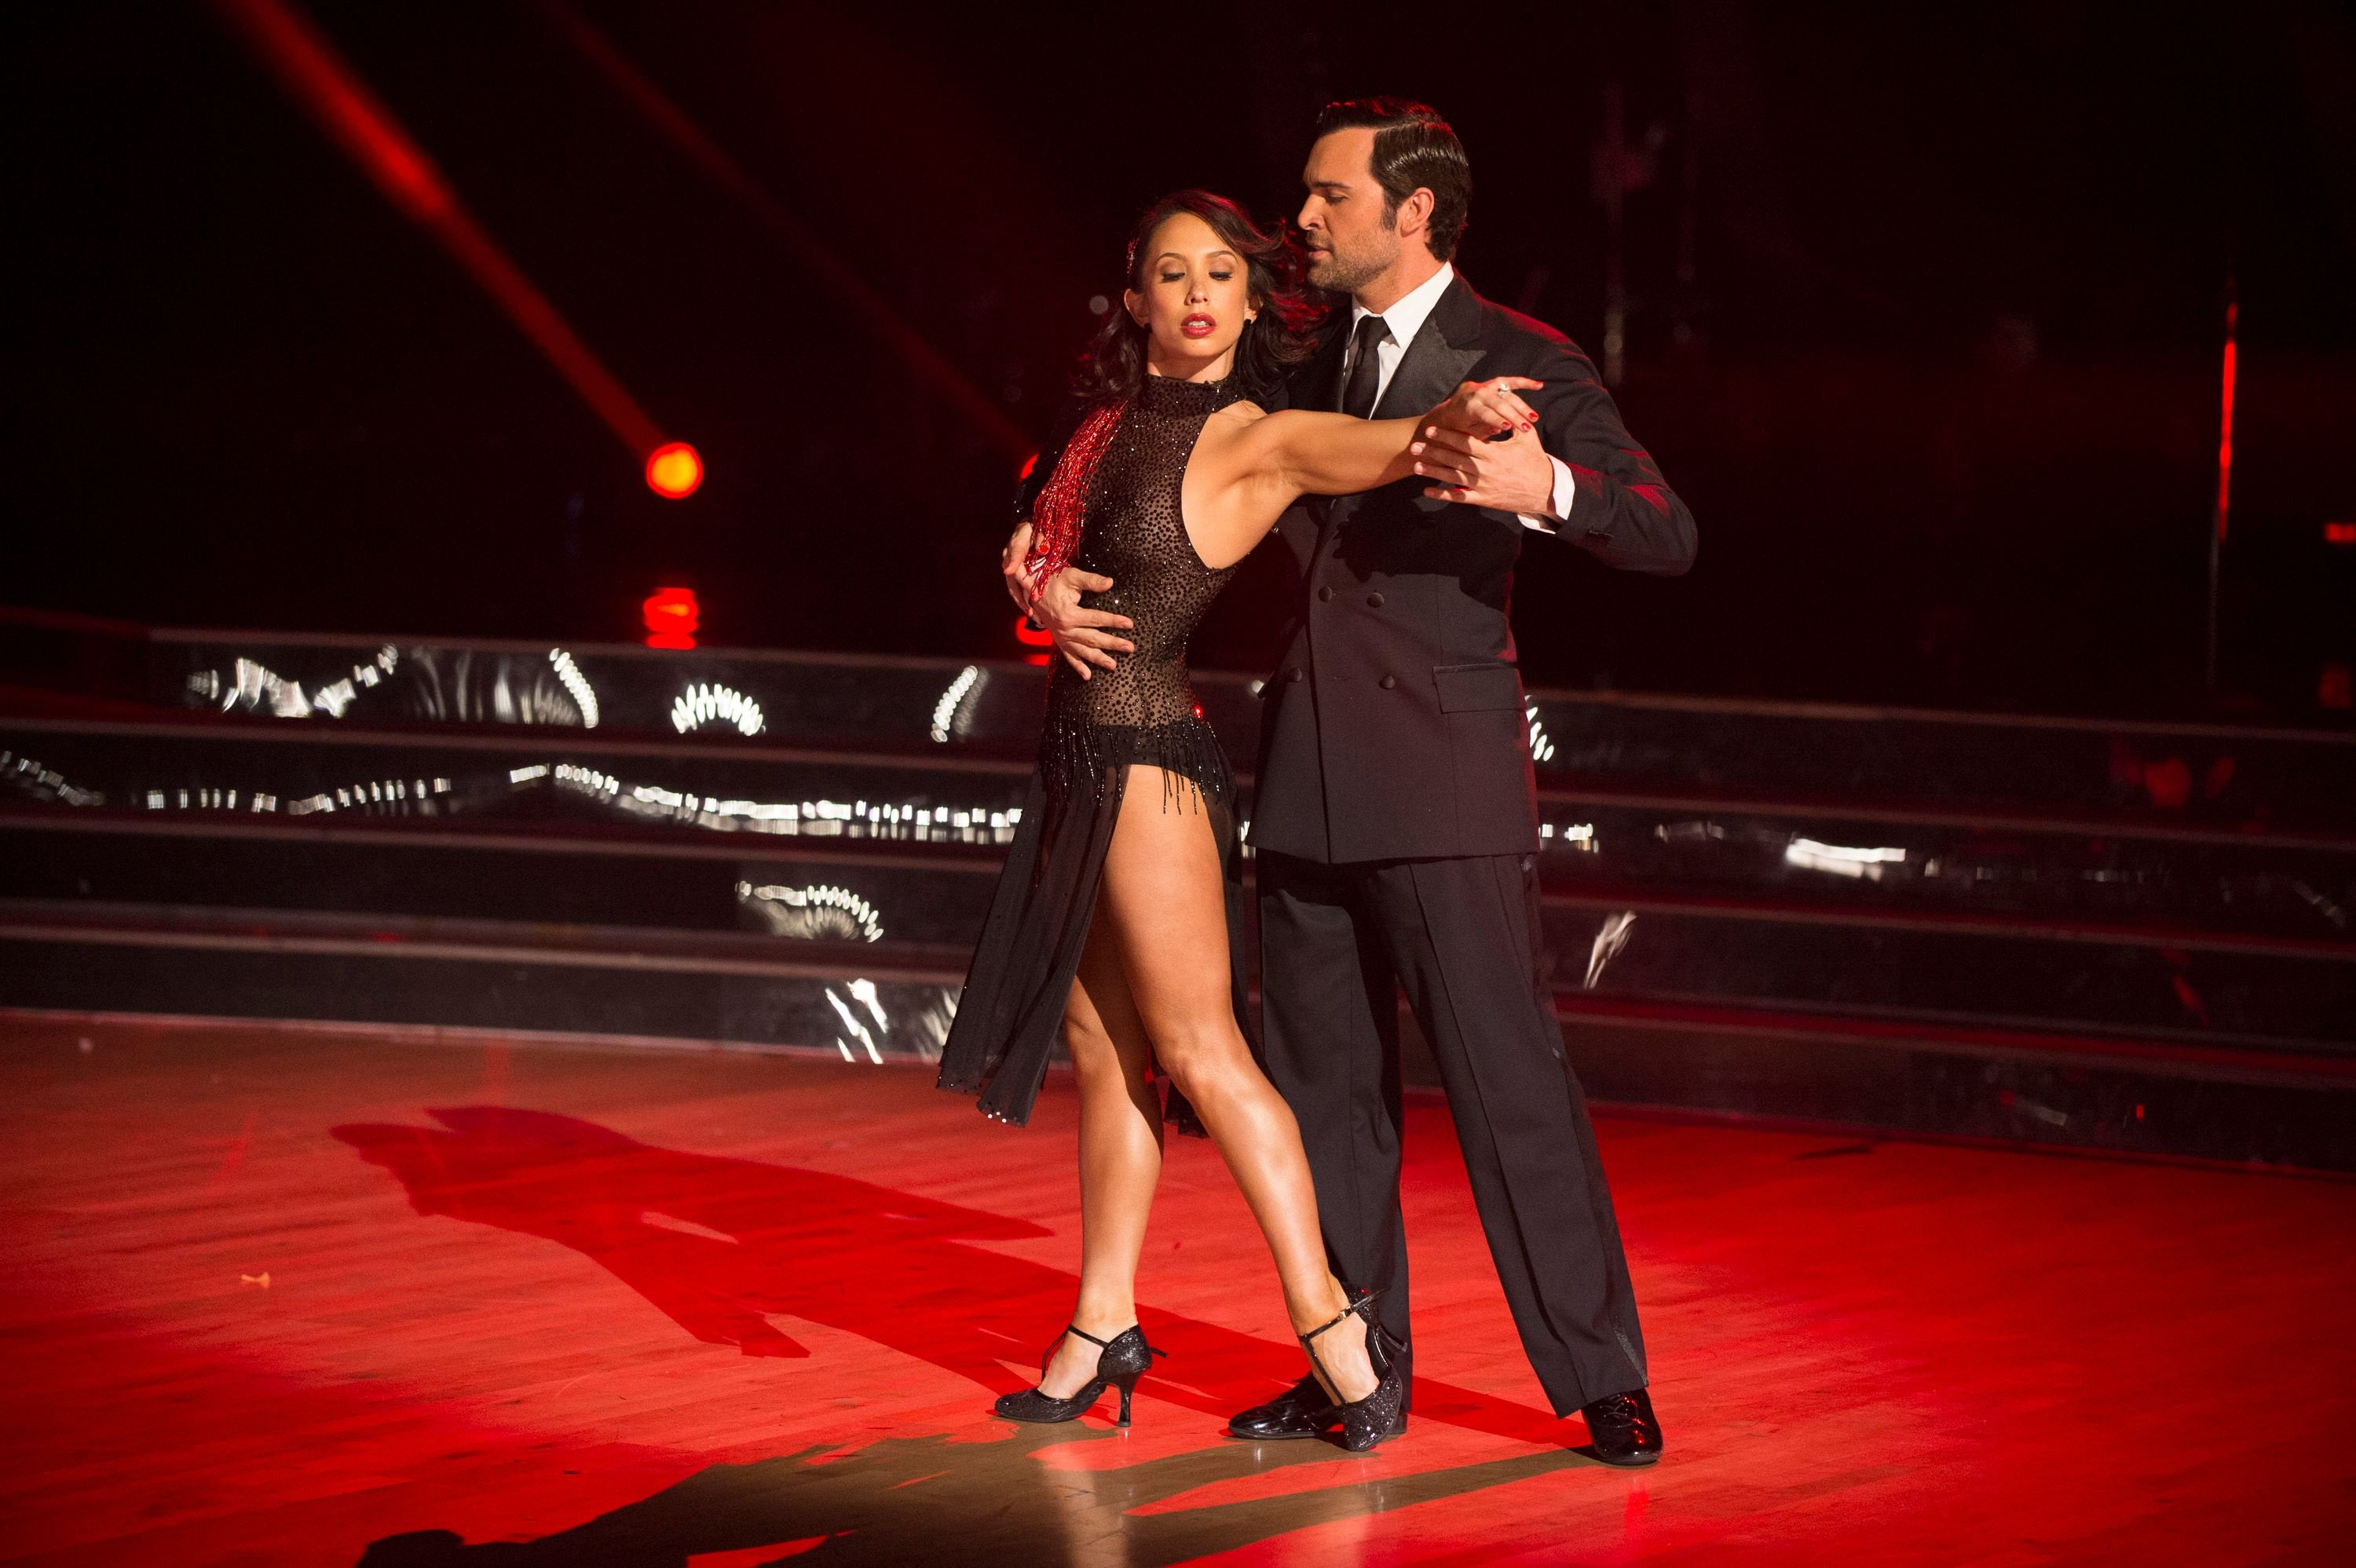 """Cheryl Burke and Juan Pablo di Pace during the season 27 finale of """"Dancing with the Stars""""  on November 19, 2018. 